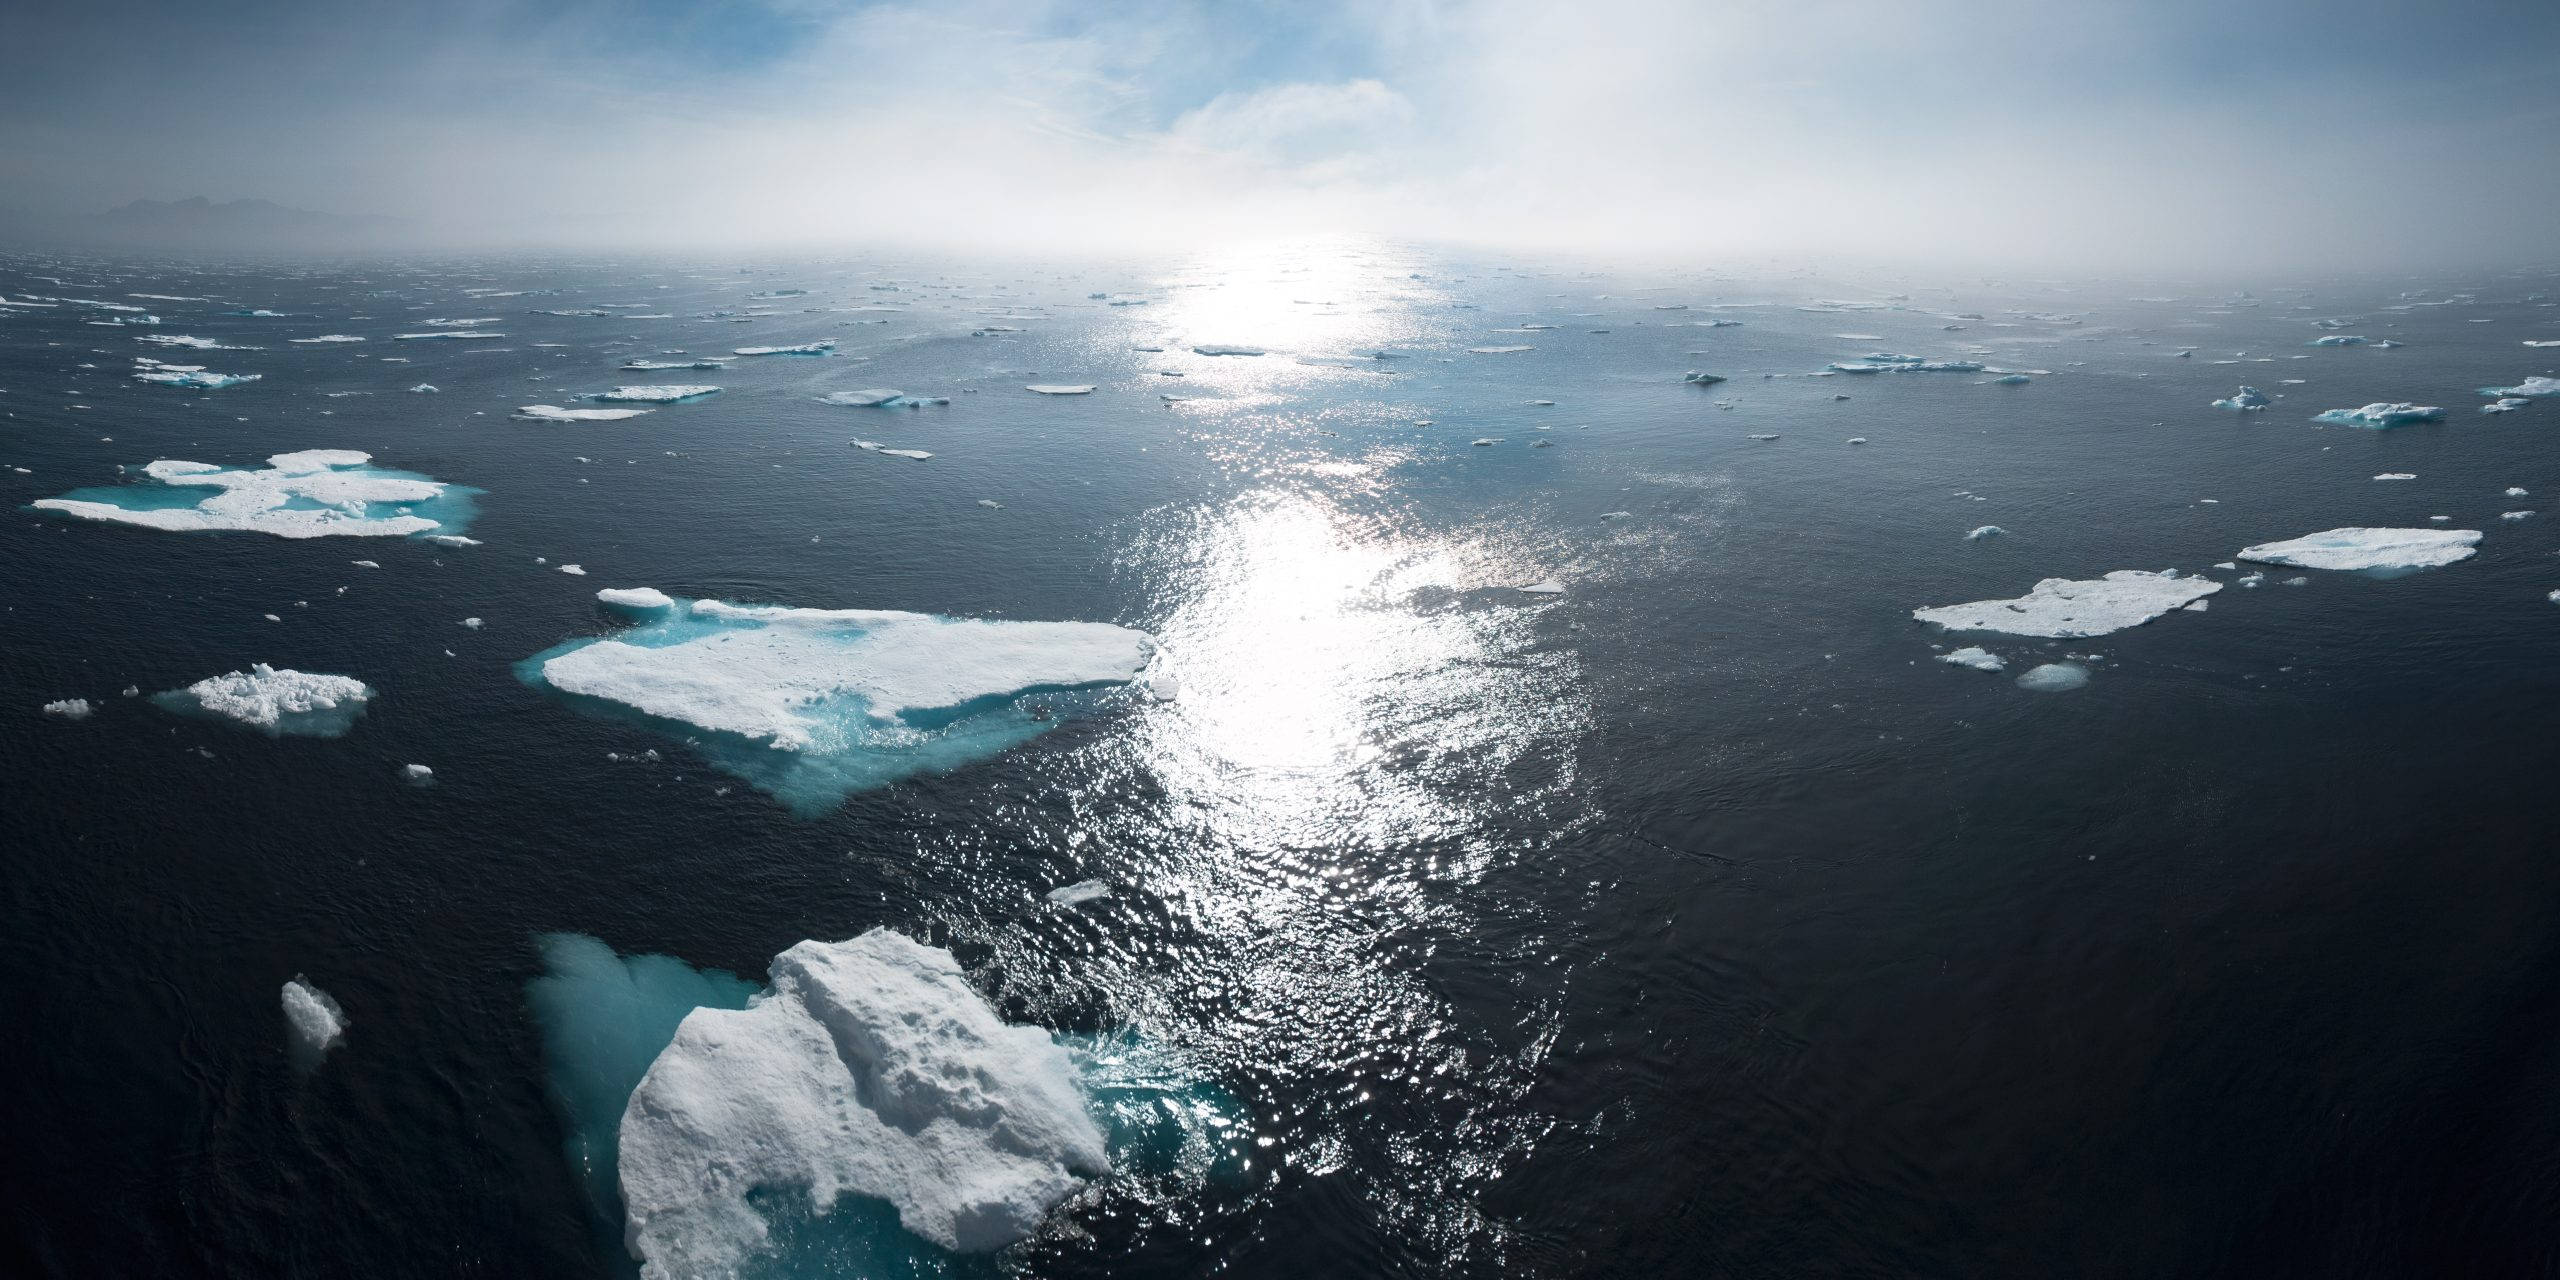 landscape and aerial photography of icebergs on body of water during daytime